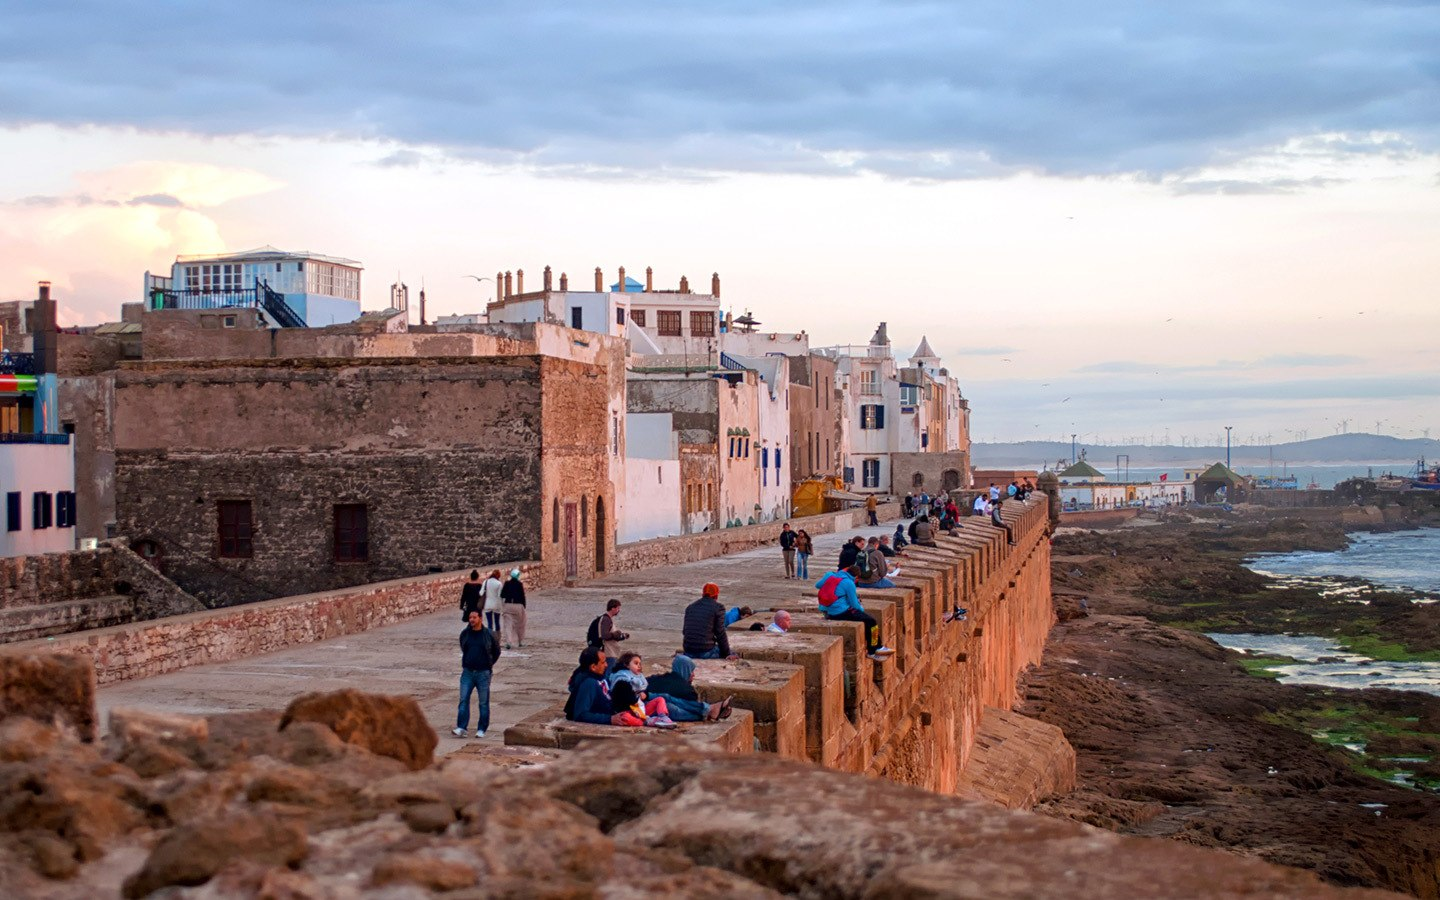 Souks and sunsets: Things to do in Essaouira, Morocco